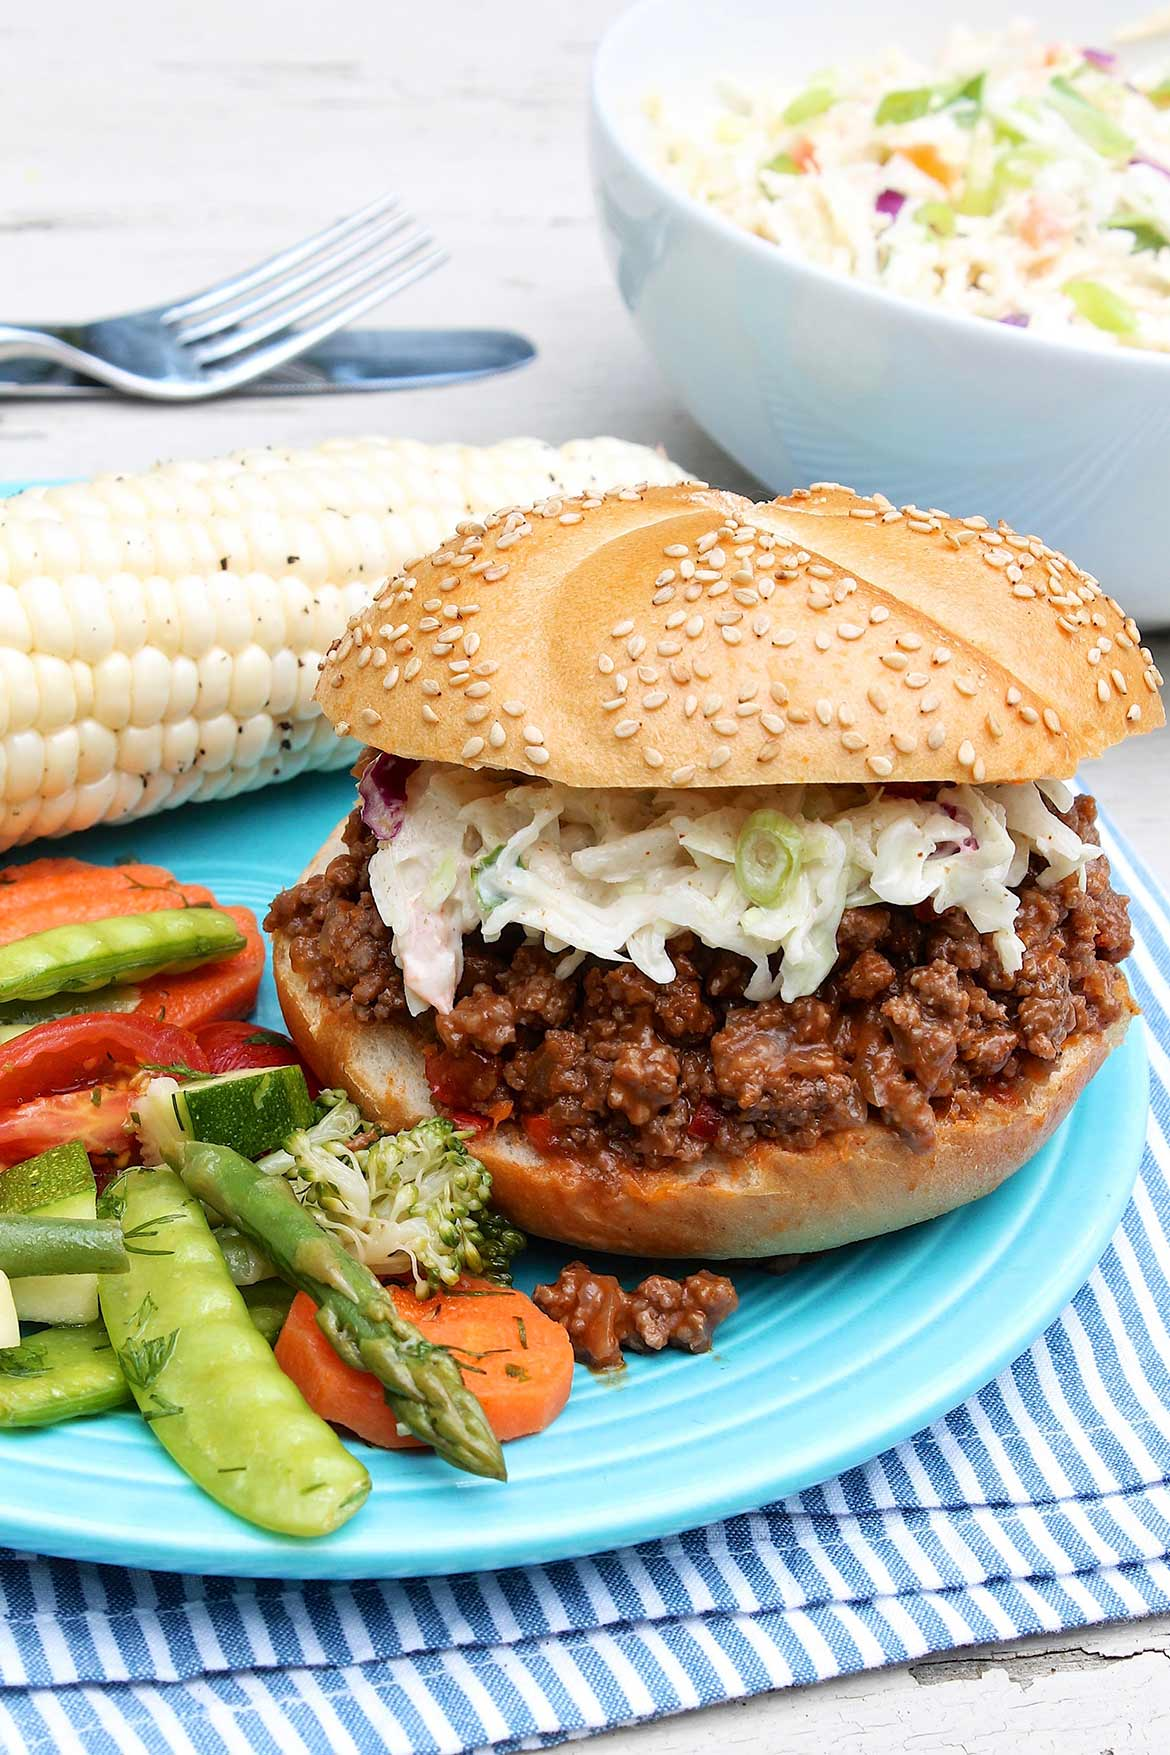 Cumin Lime Coleslaw piled on saucy barbecue sandwiches for the win!